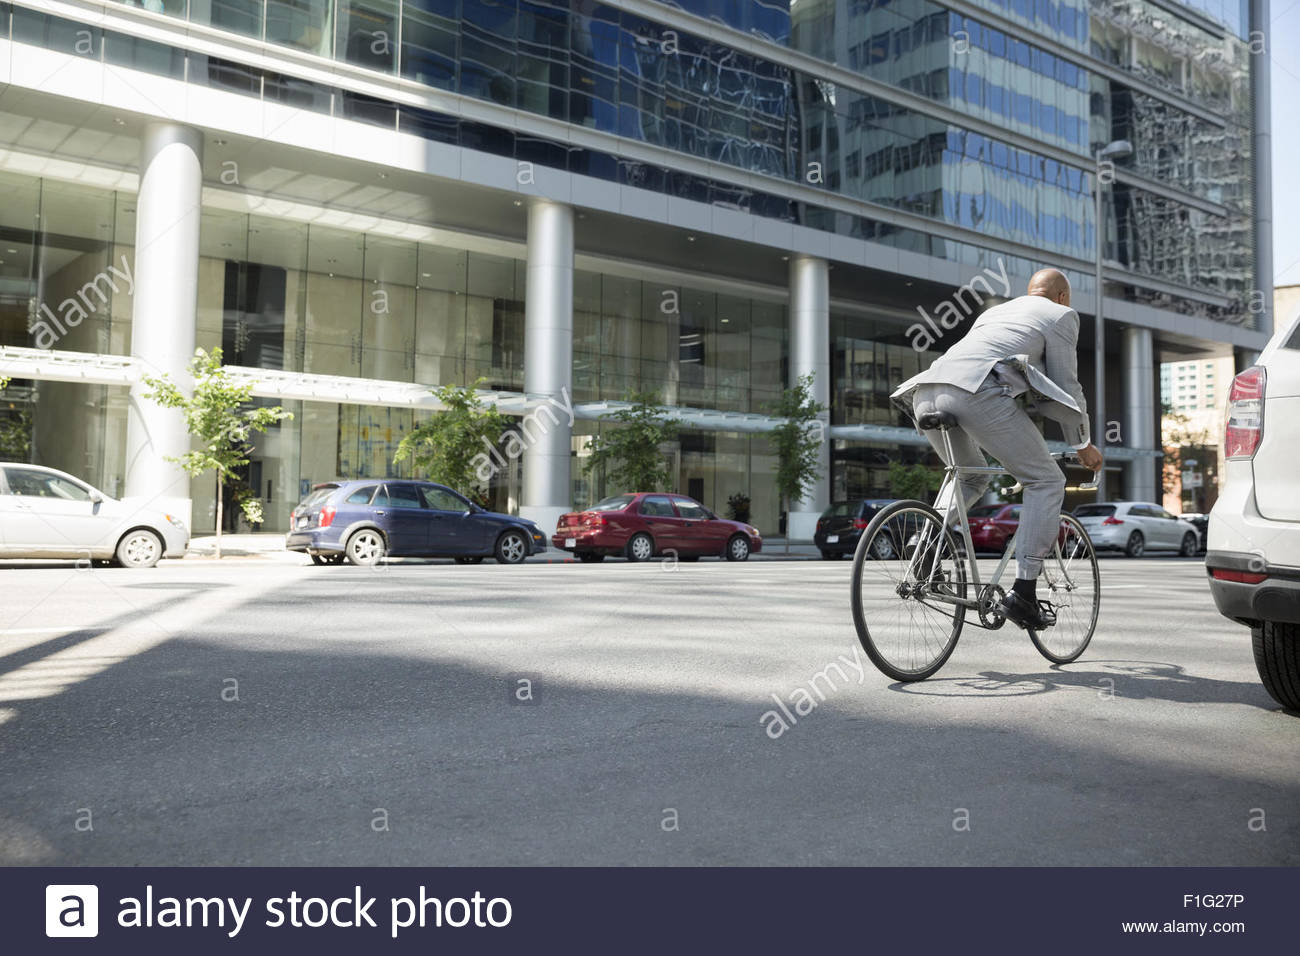 Businessman in suit riding bicycle on city street - Stock Image